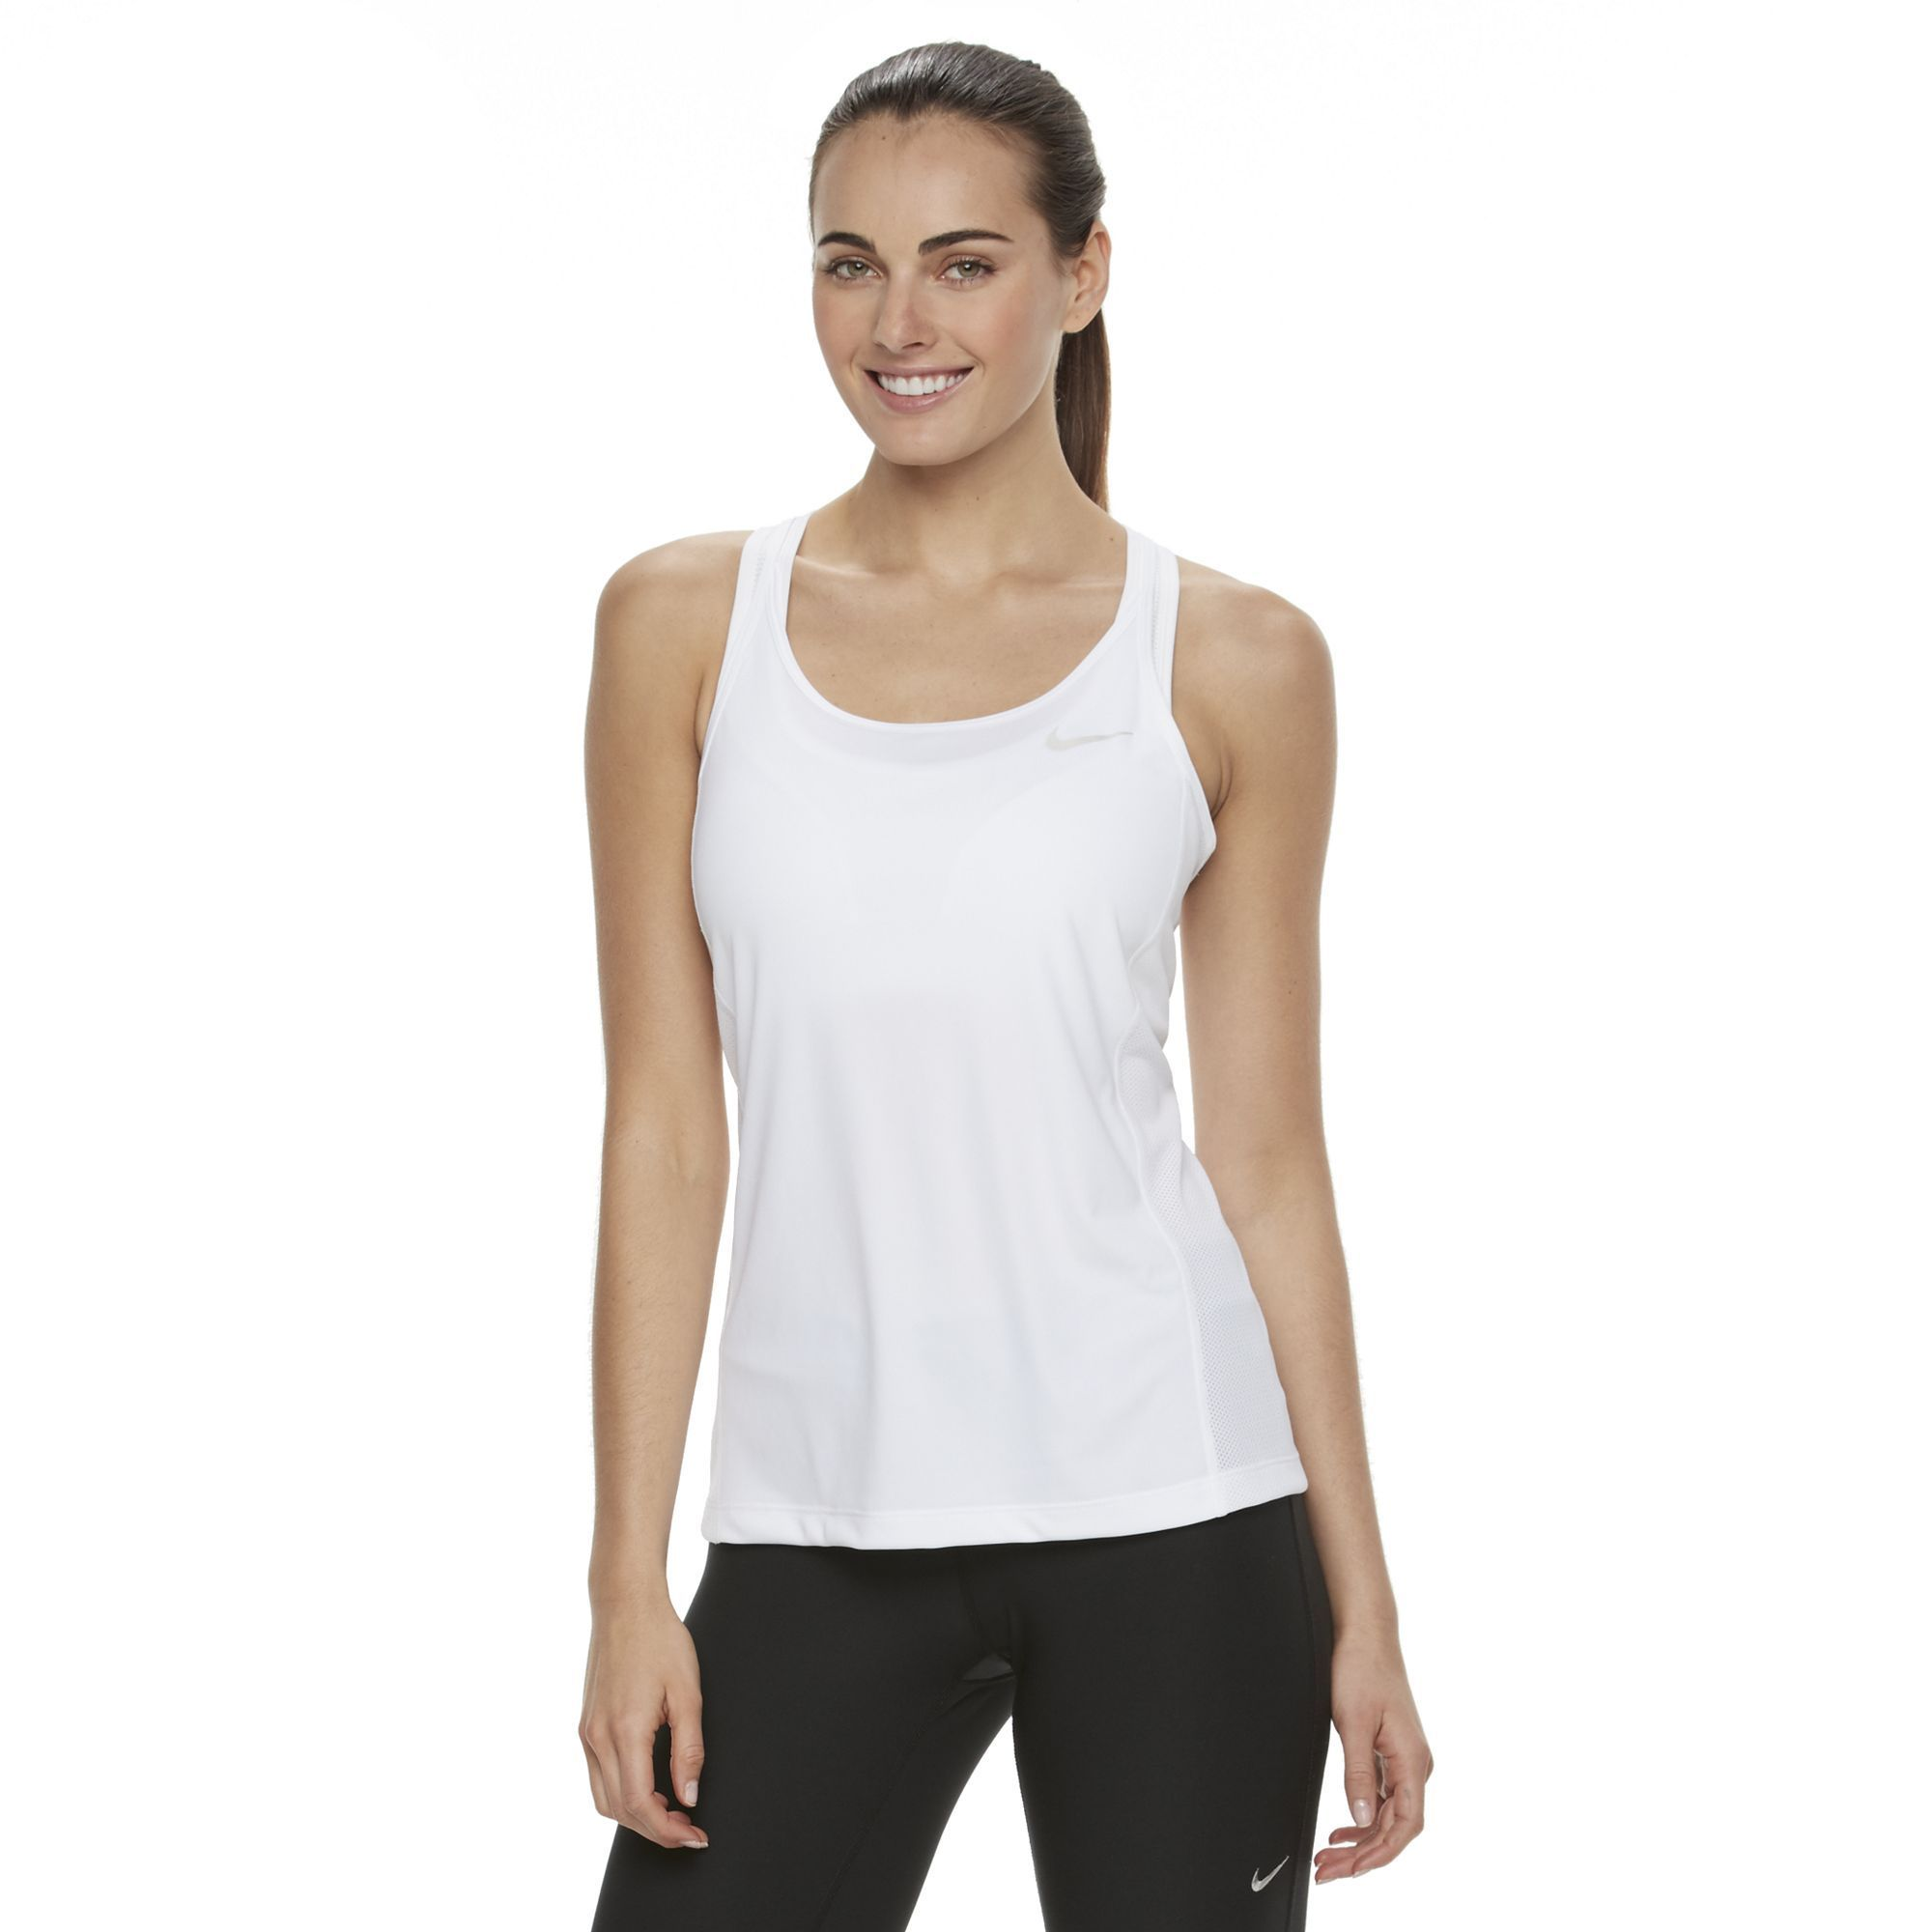 47c2b791a6 Women's Nike Dri-FIT Mesh Racerback Tank Top | Products | Racerback ...